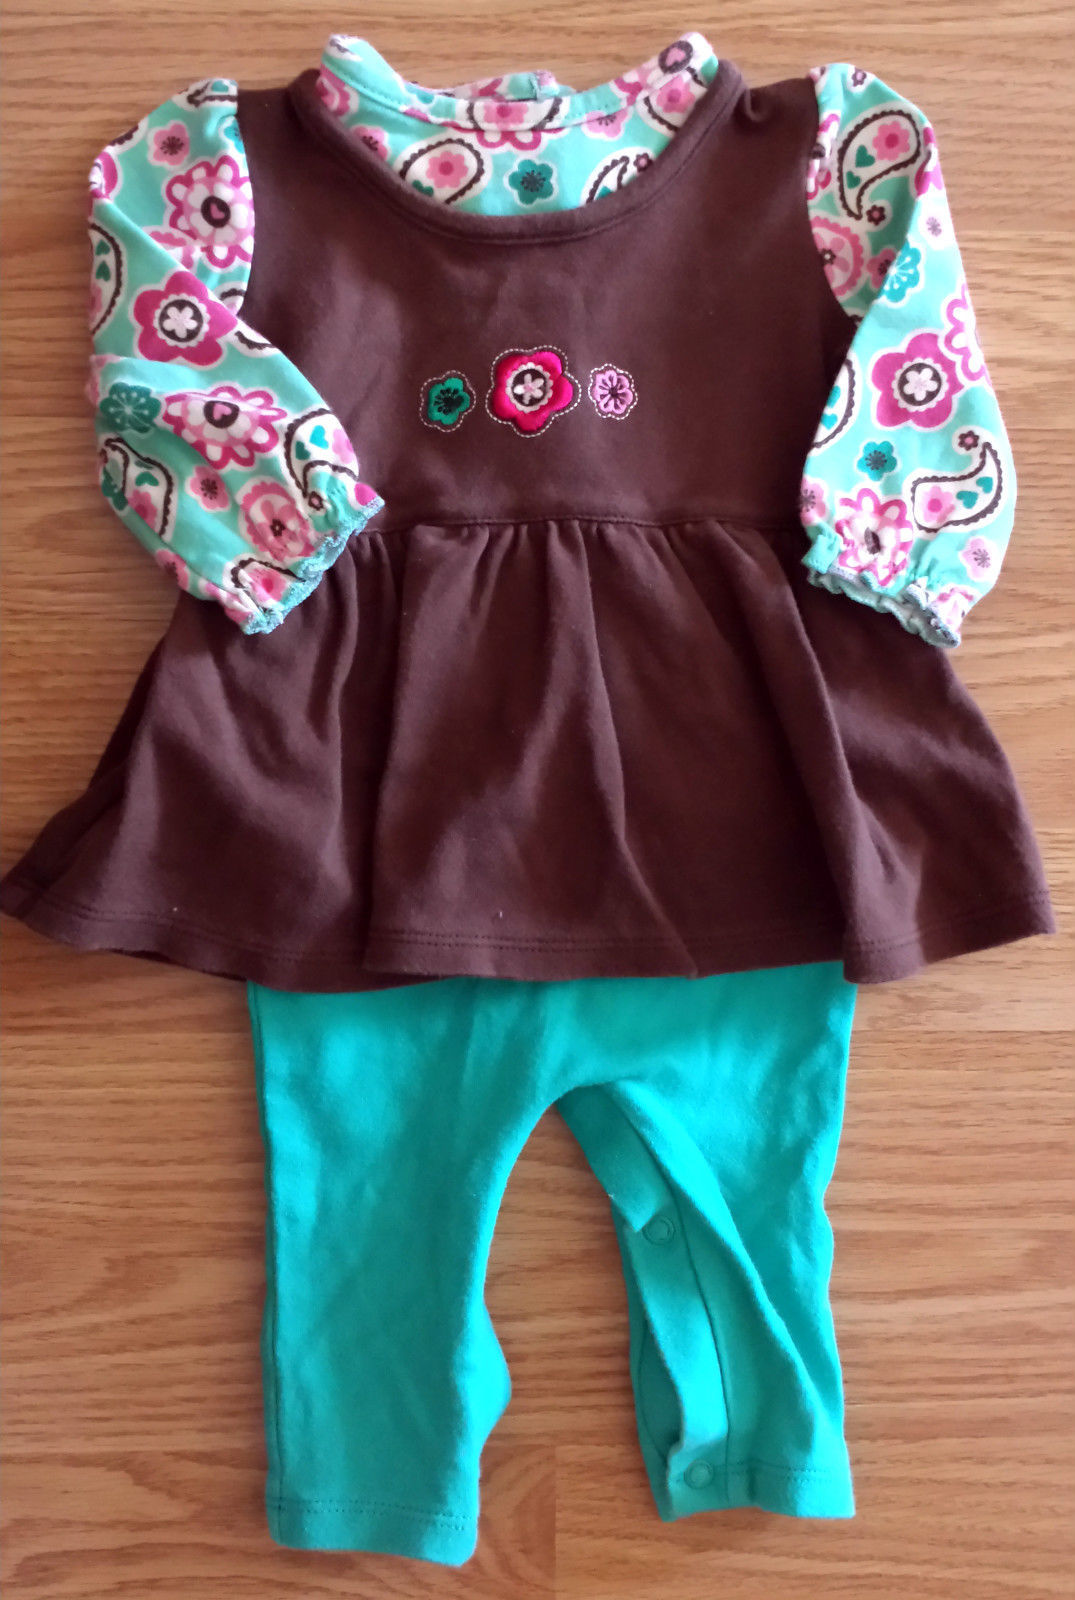 Girl's Size 0-3 M Months One Pc Okie Dokie Teal Brown Floral Design Pants Romper